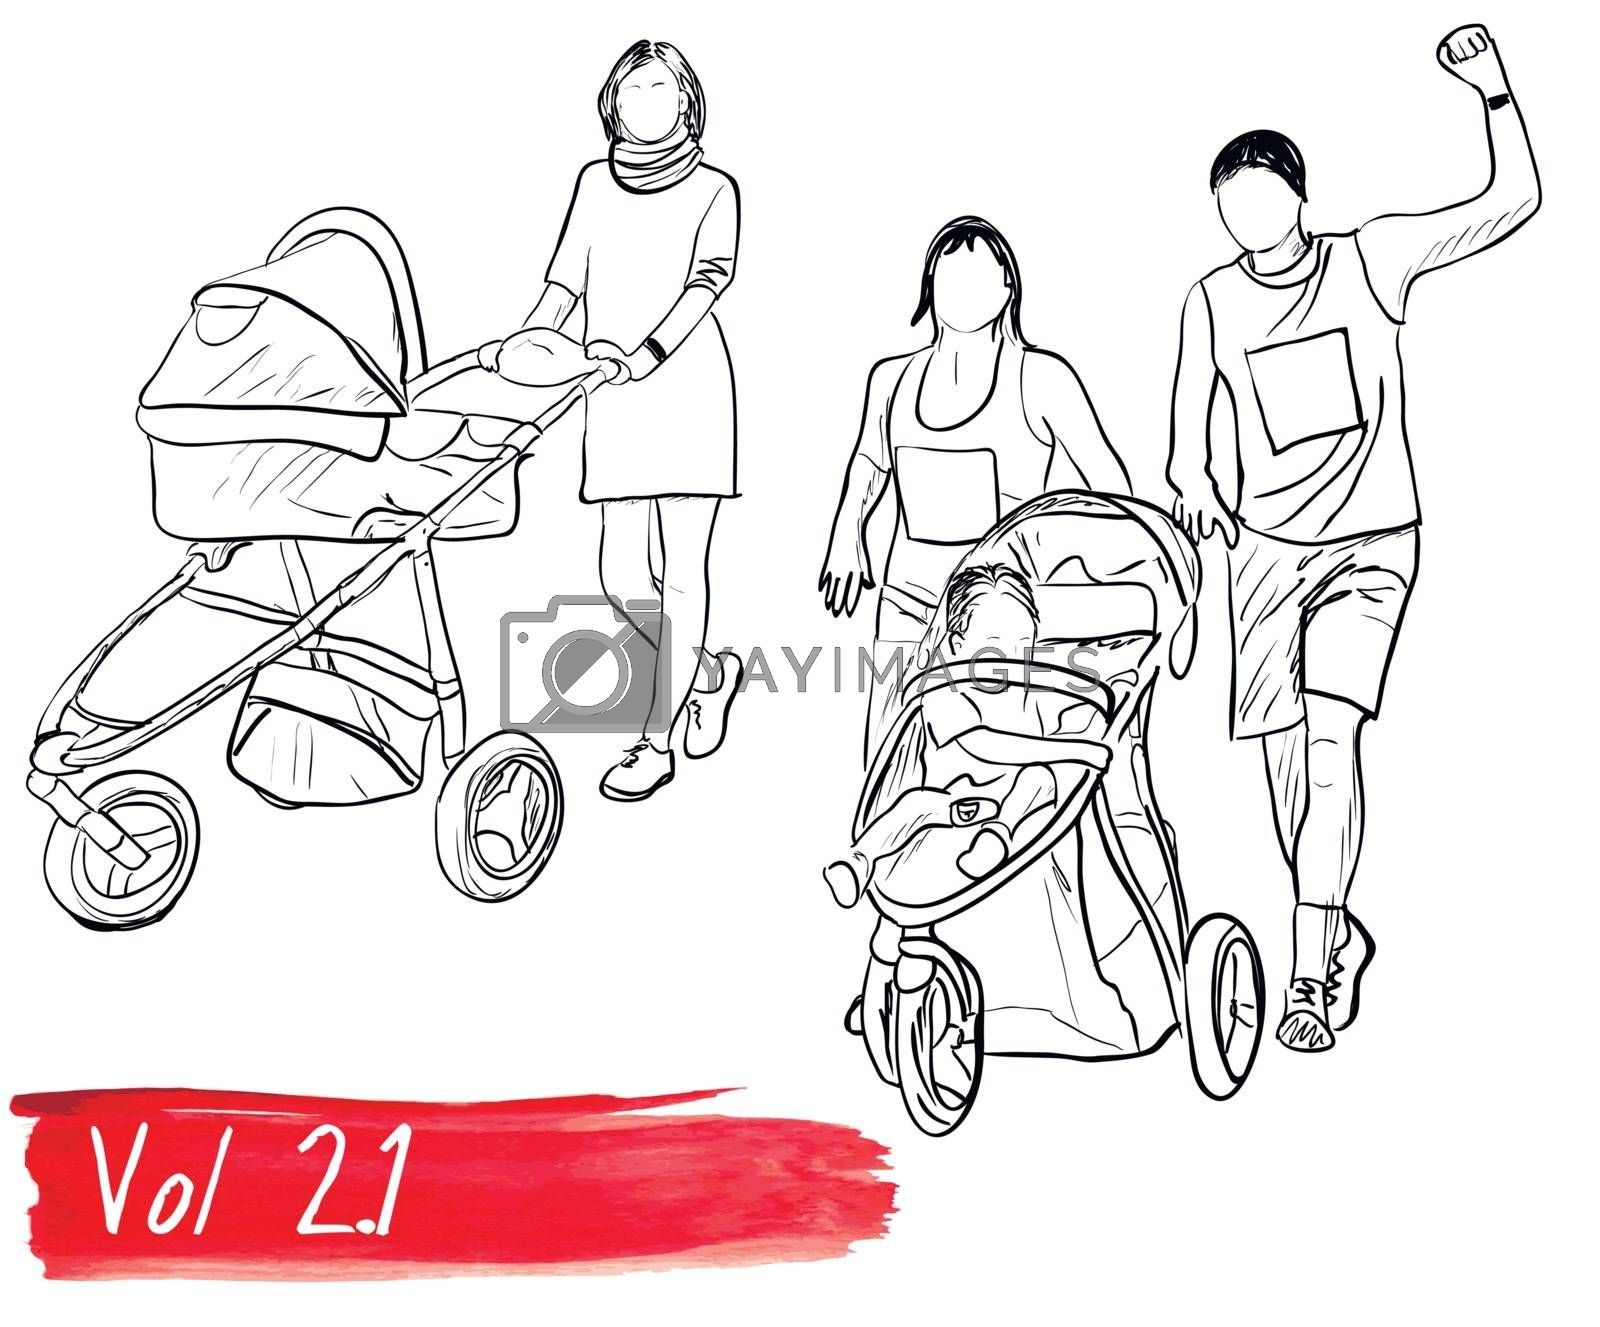 Ser with silhouettes about family. Eps8 vector illustration.